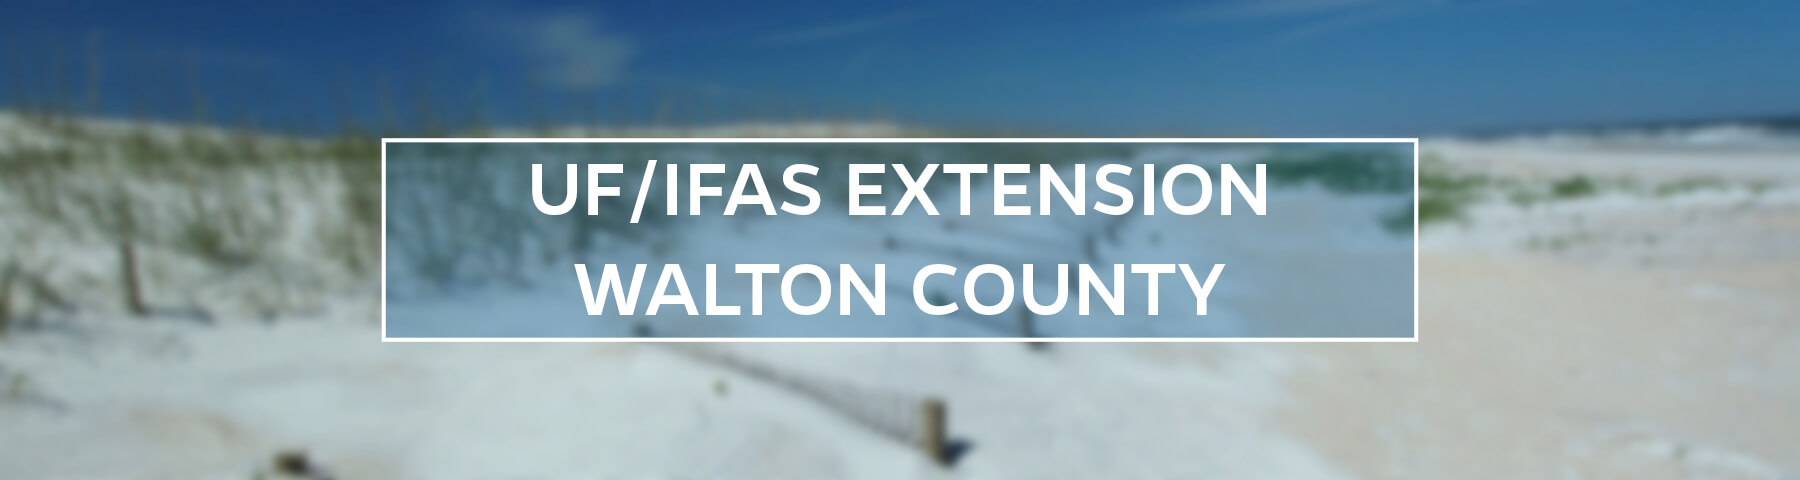 UF/IFAS Extension Walton County